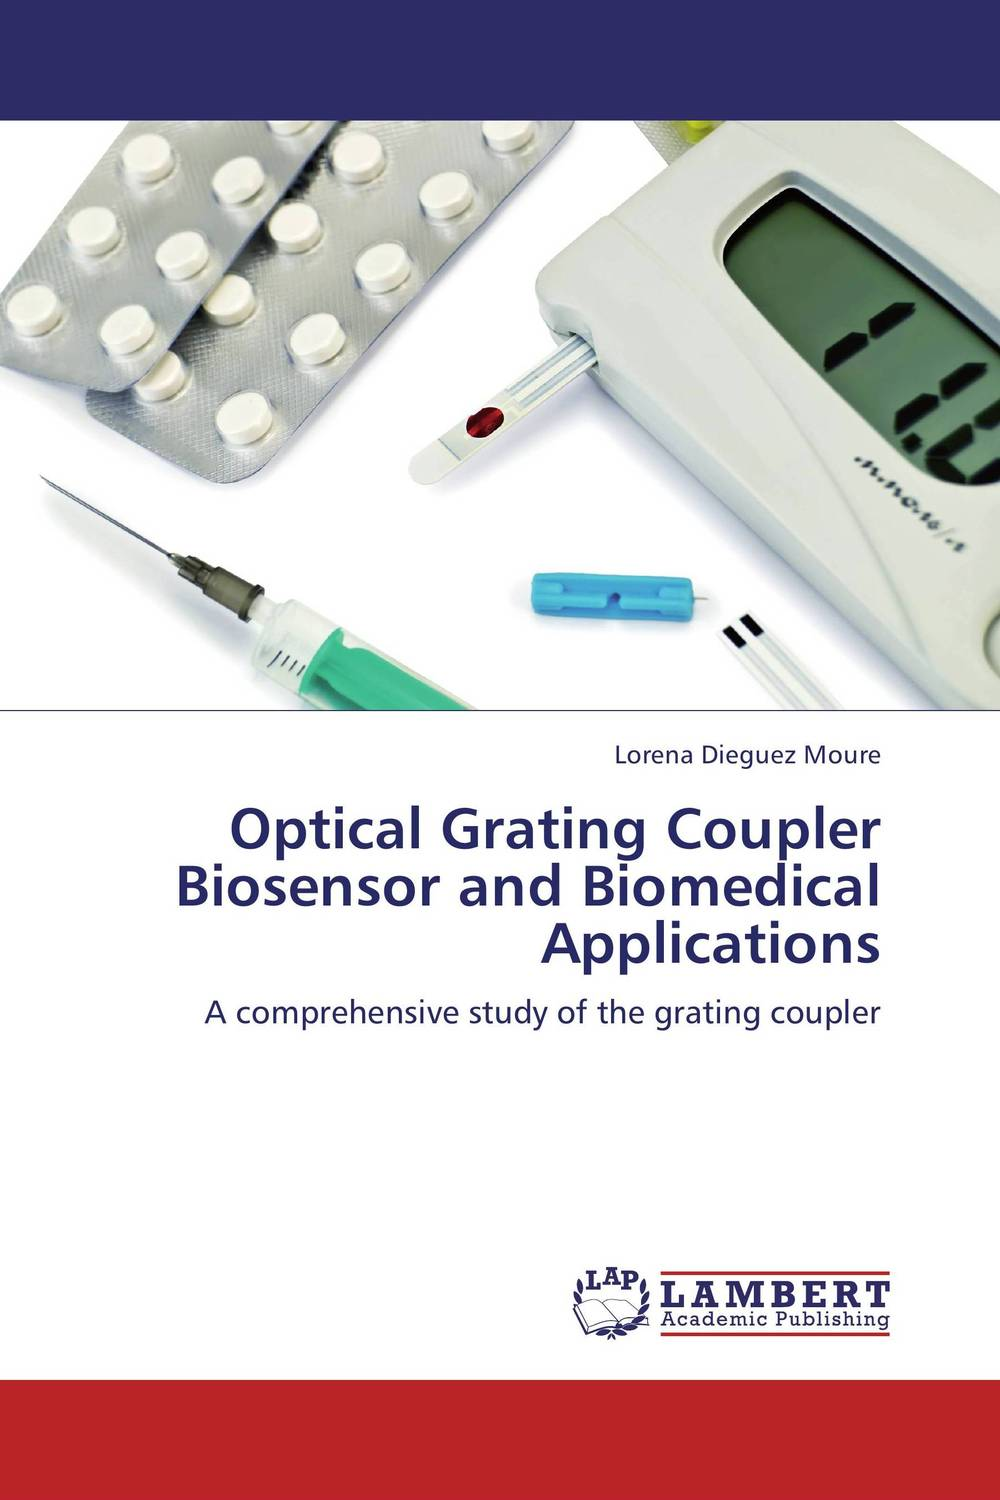 Optical Grating Coupler Biosensor and Biomedical Applications enzyme electrodes for biosensor & biofuel cell applications page 1